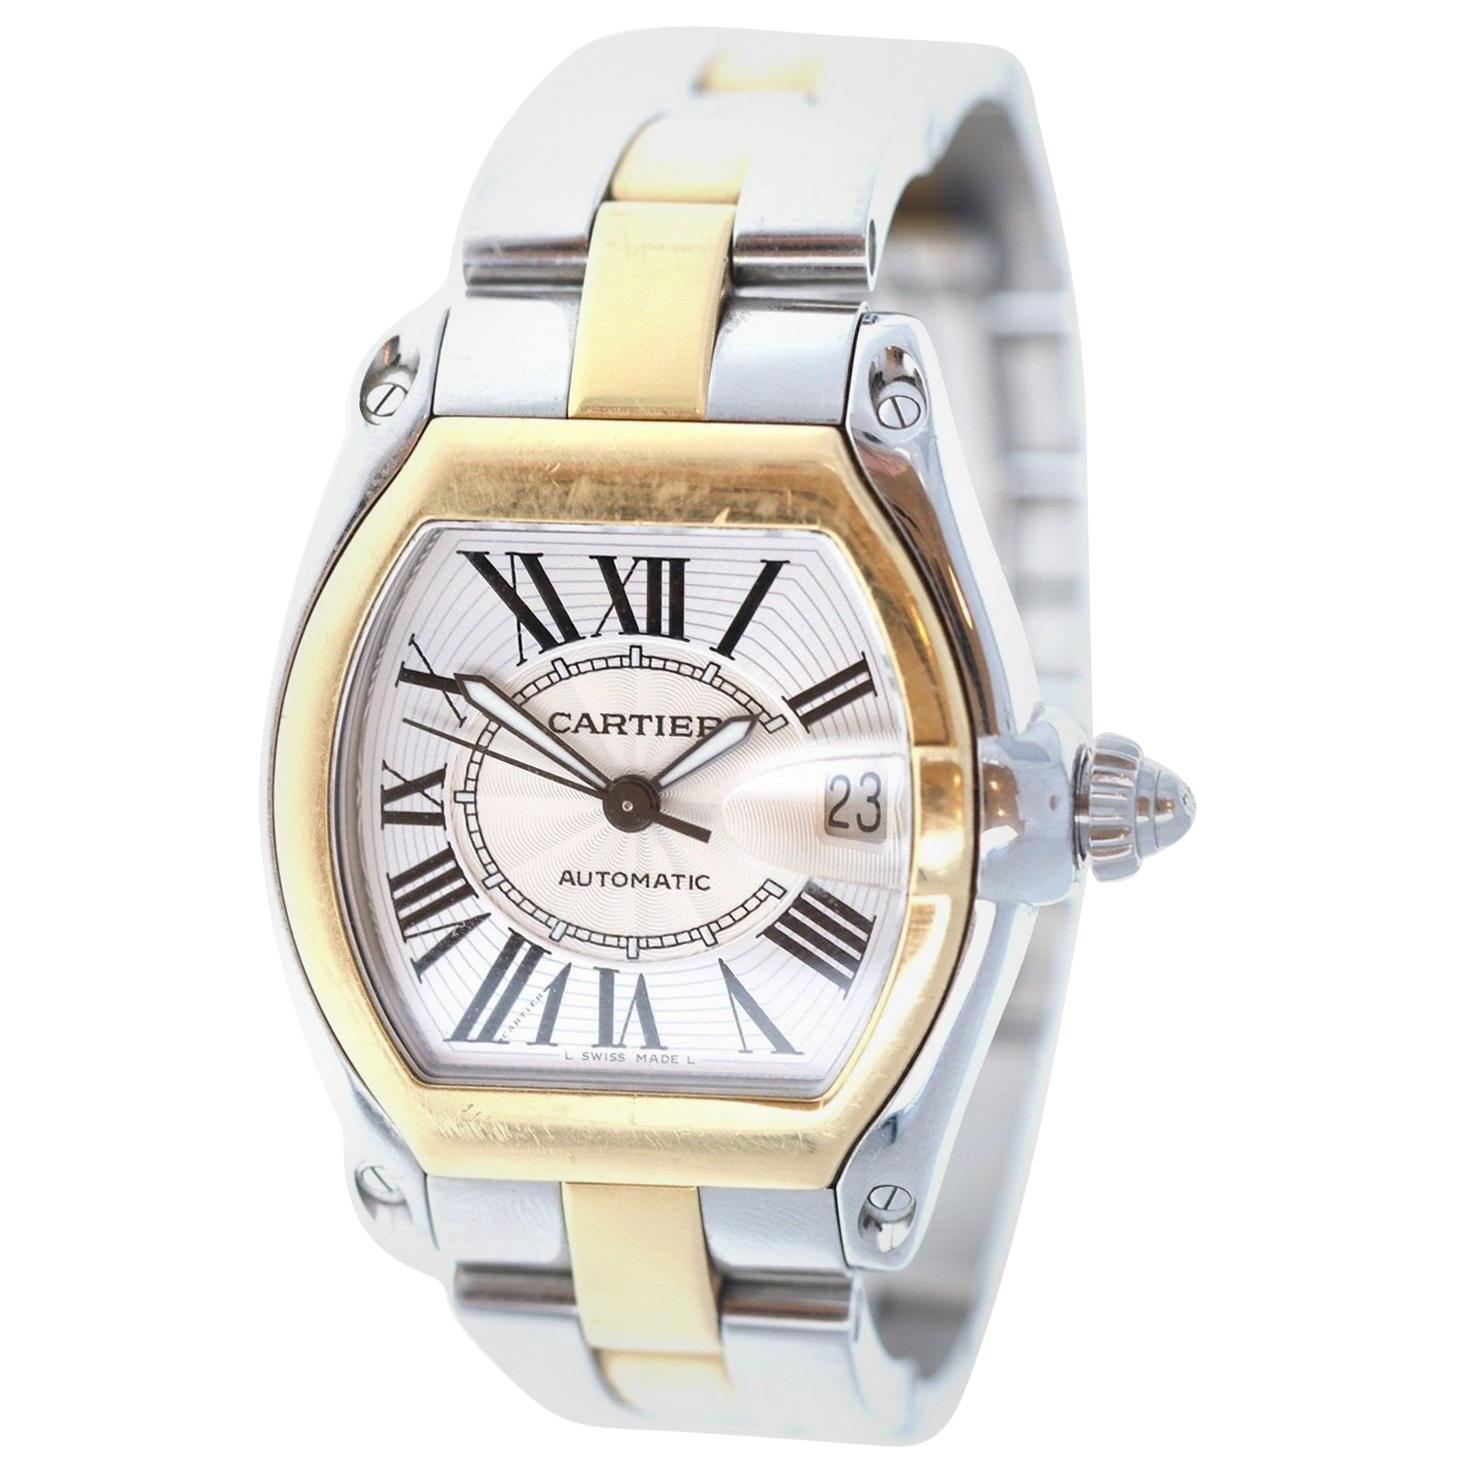 Cartier Two-Tone 18 Karat Gold and Stainless Roadster Large Size Watch 2510